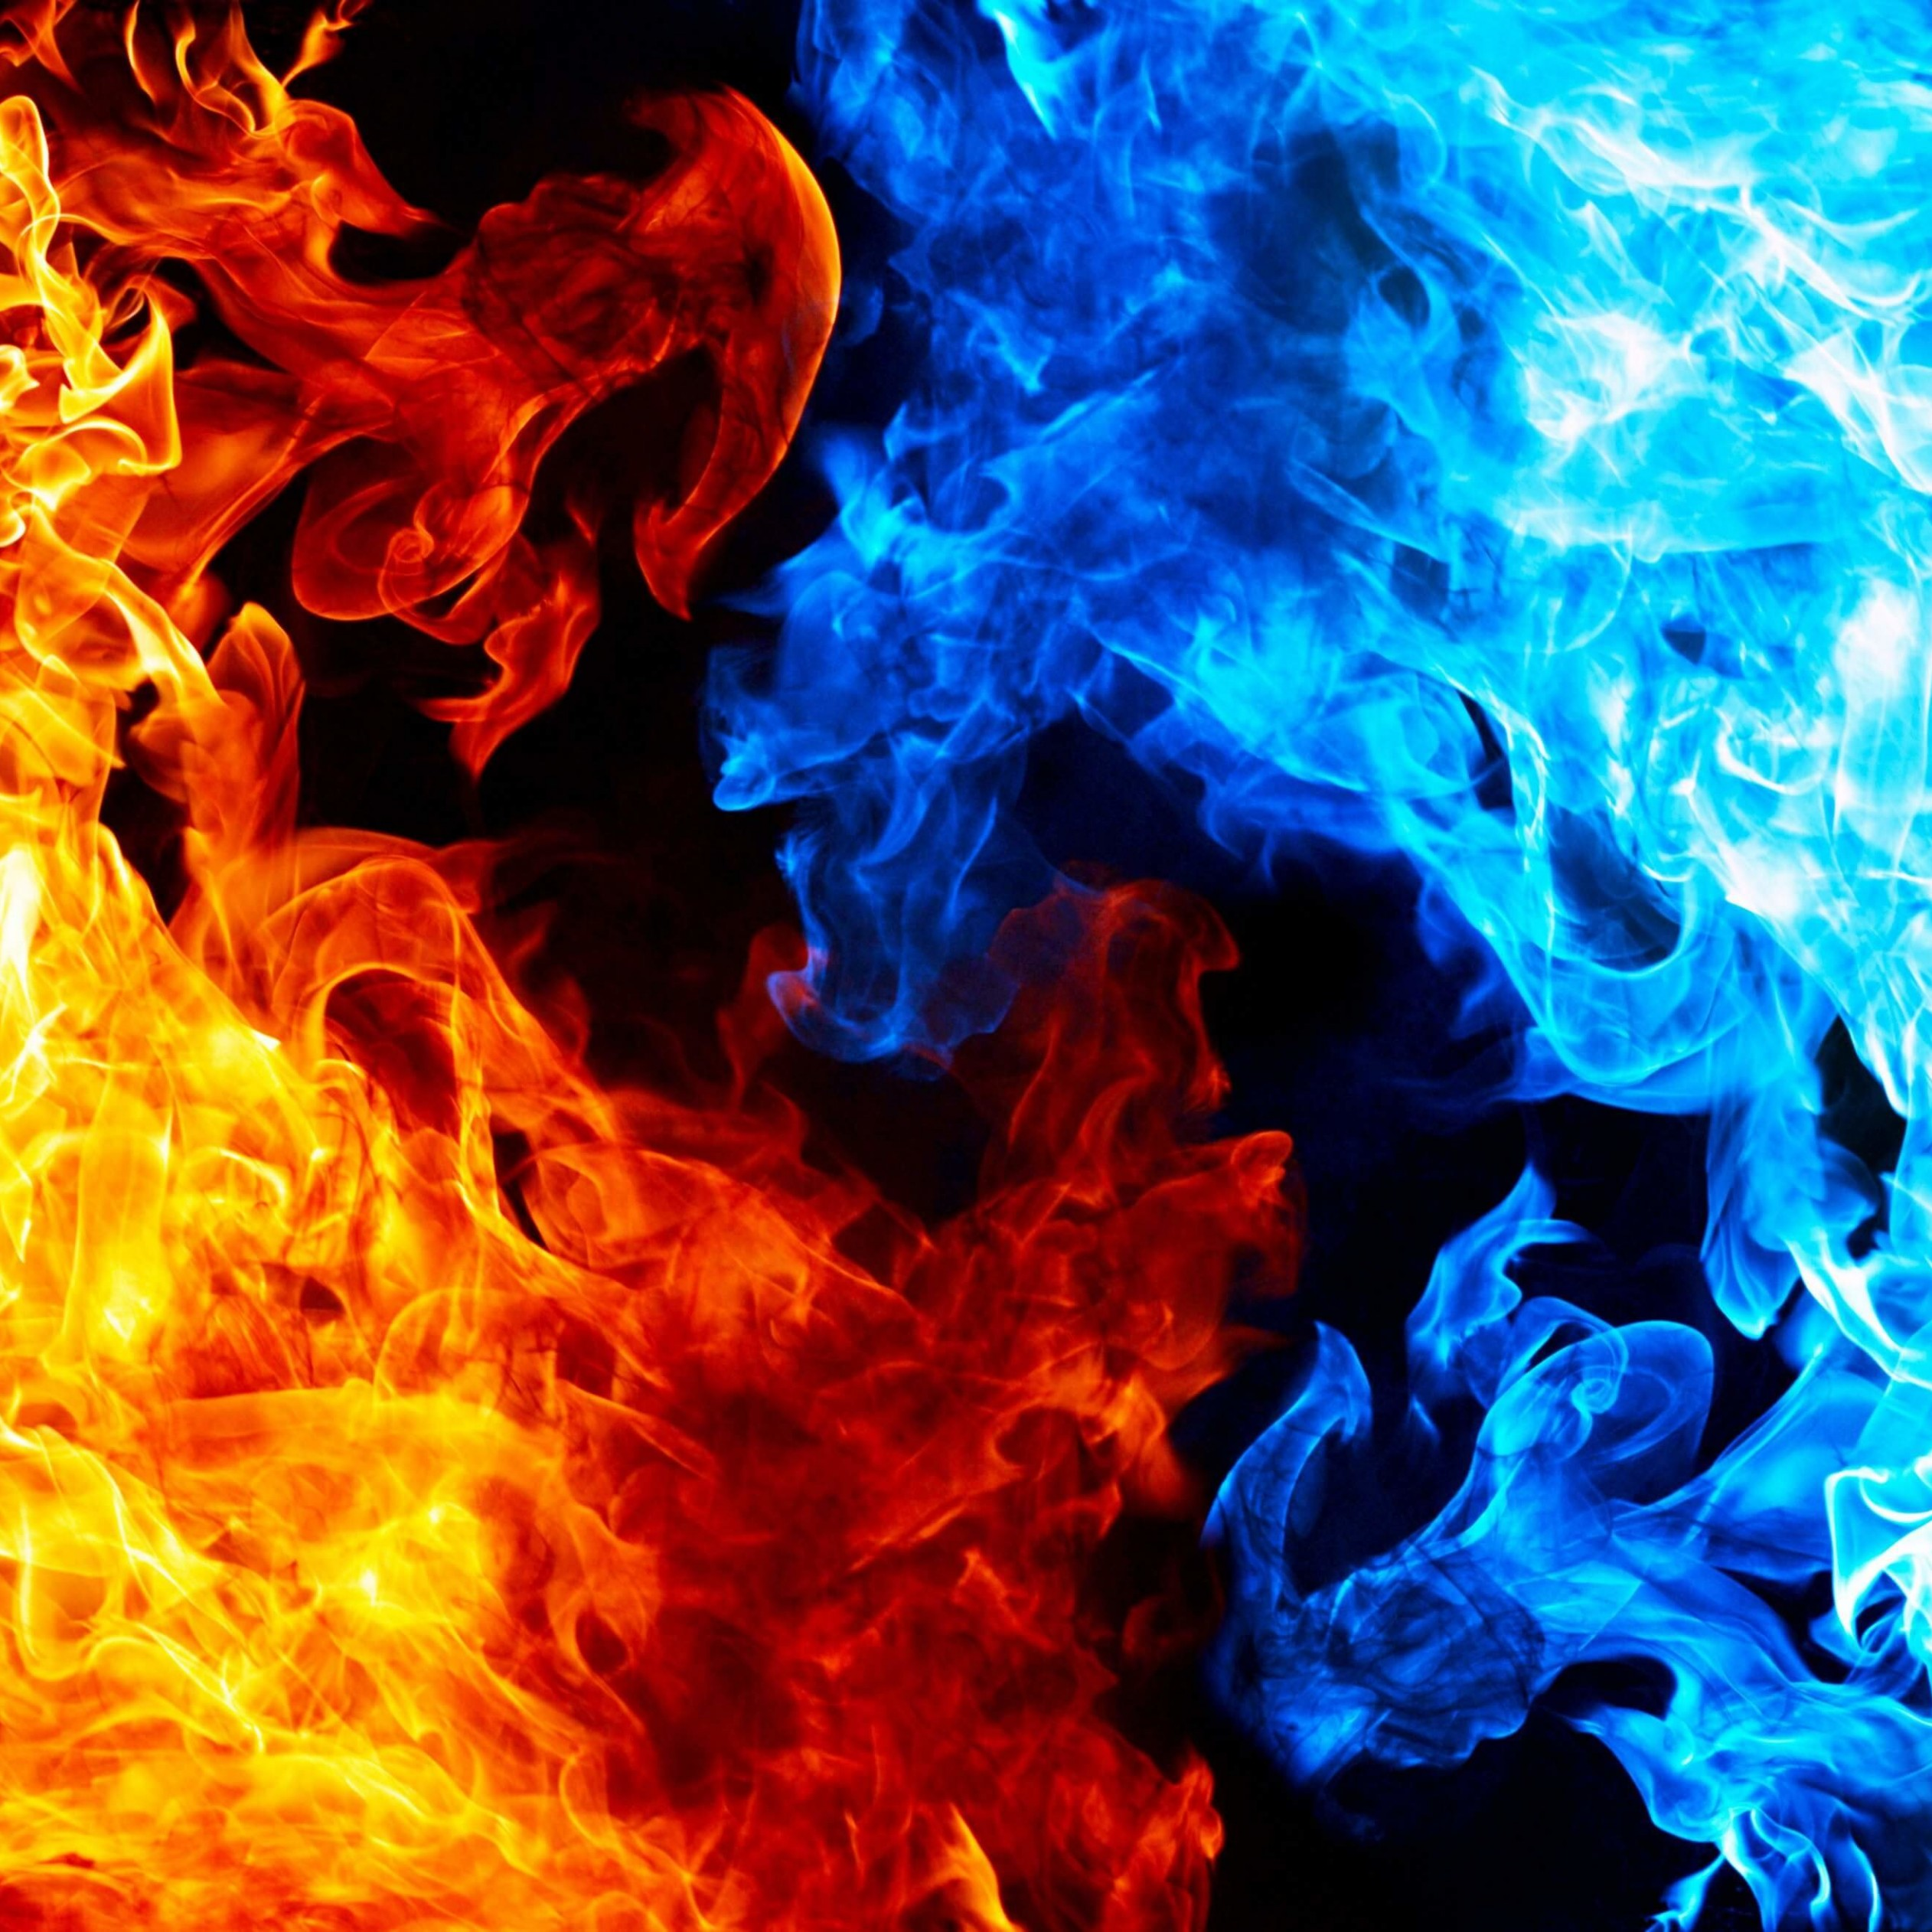 Download Blue And Red Fire Hd Wallpaper For Ipad 3